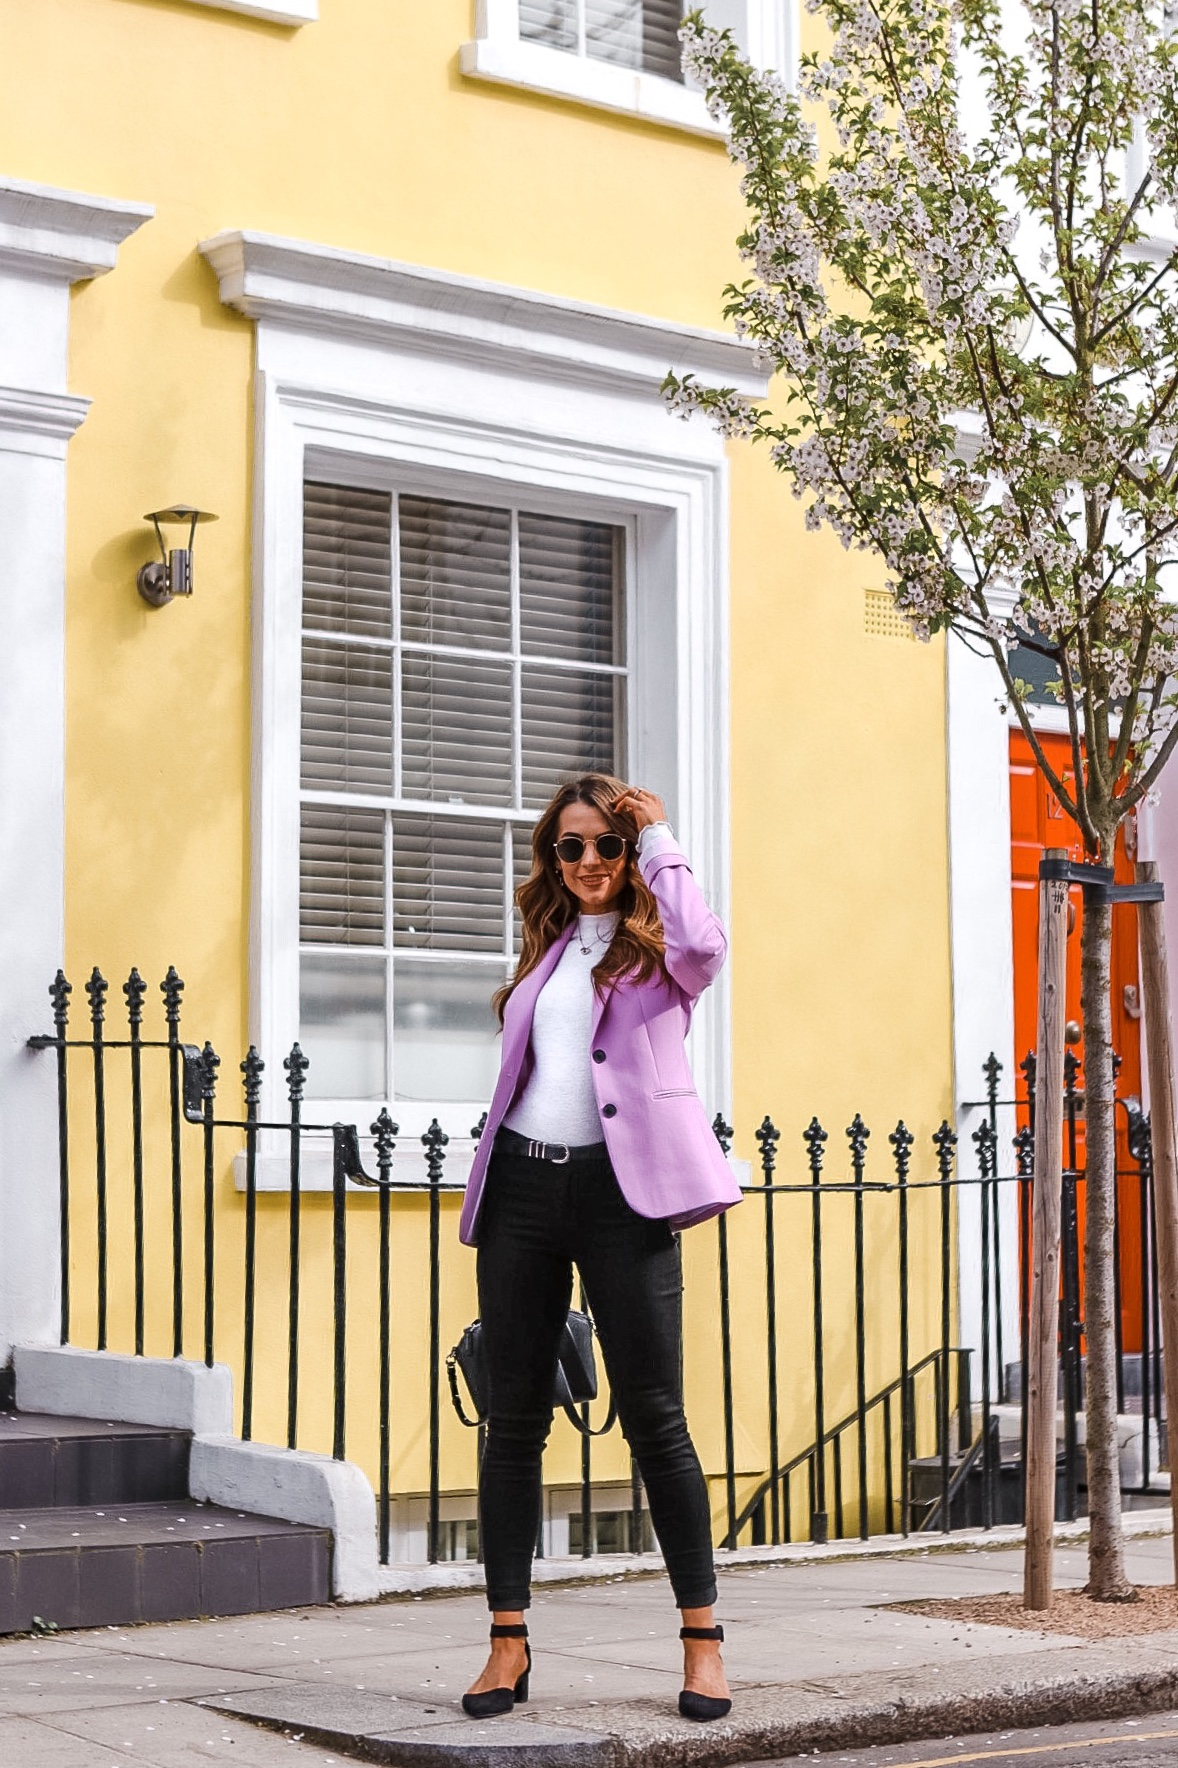 notting hill, london, visit london, blossom trees, french connection, fashion, blazer, jeans outfit